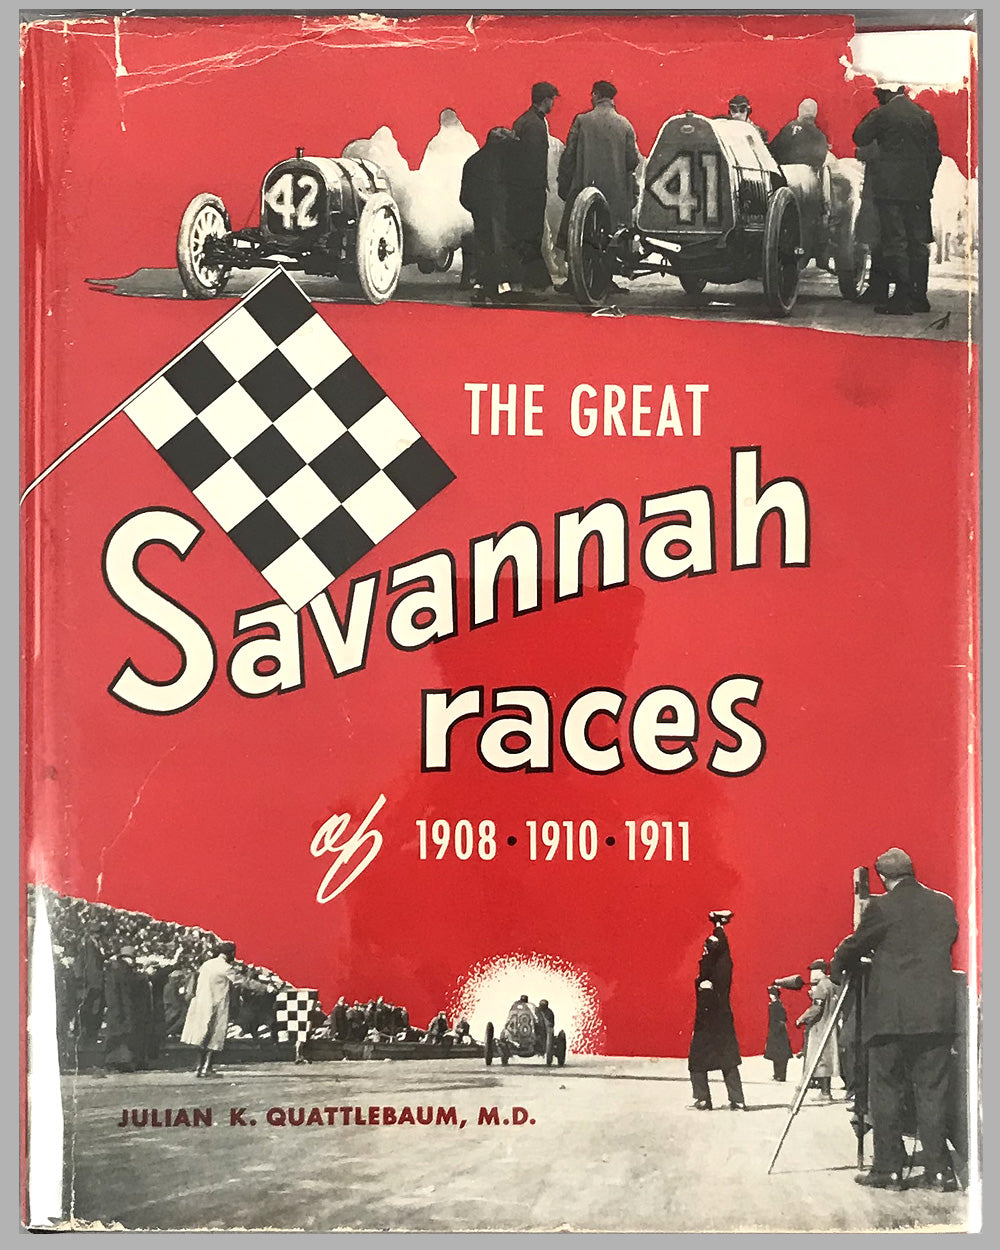 """The Great Savannah Races of 1908, 1910, 1911"" first edition book, 1957, by Julian Quattlebaum M.D. -"